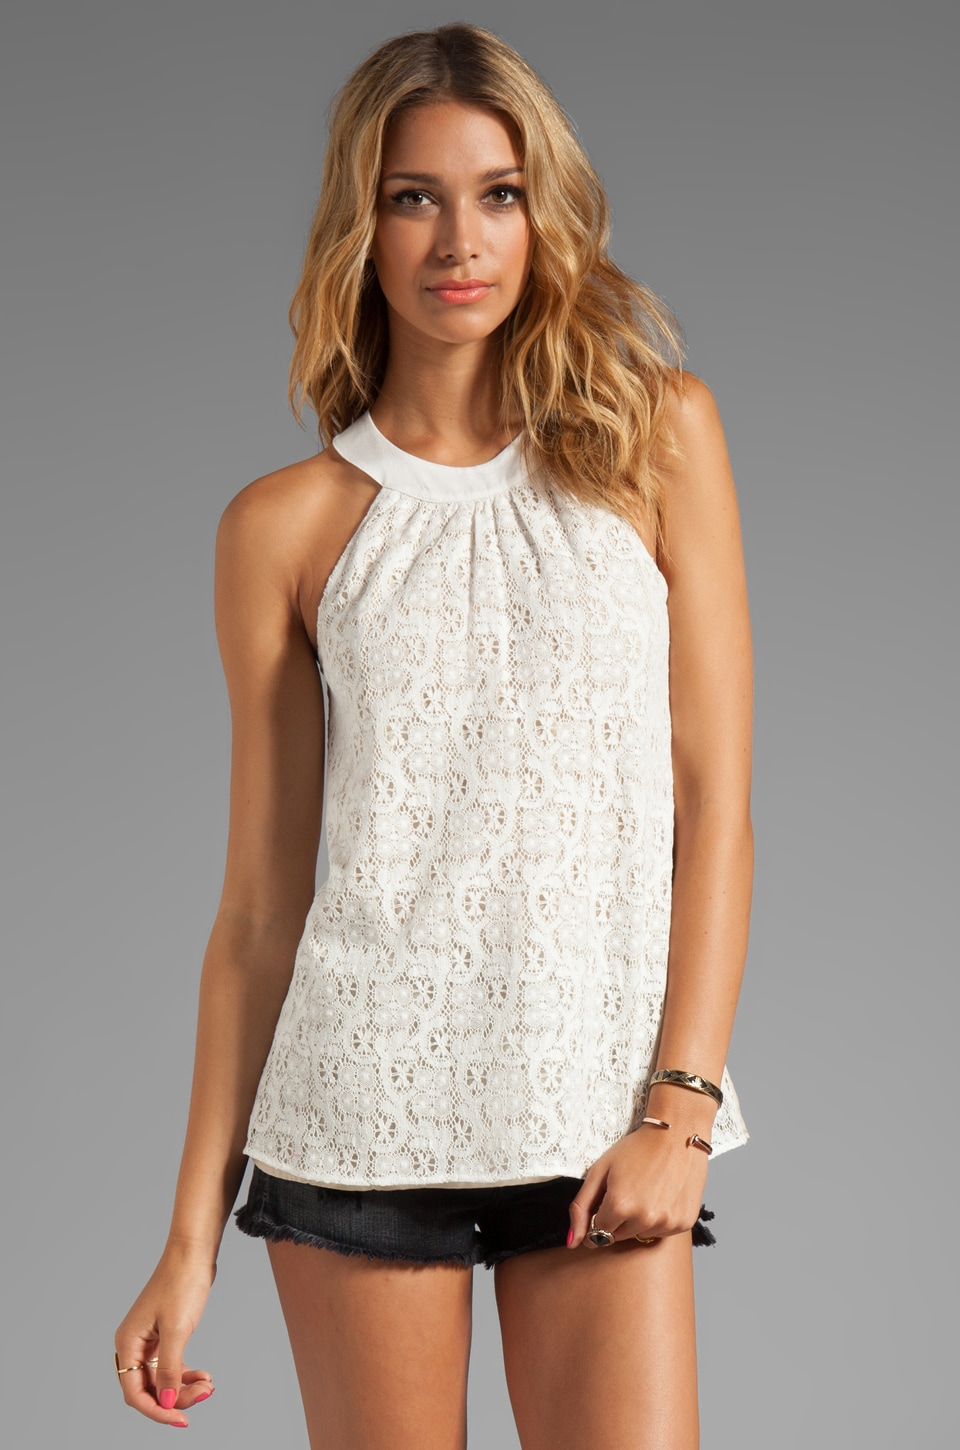 Testament Crochet Halter Top in White